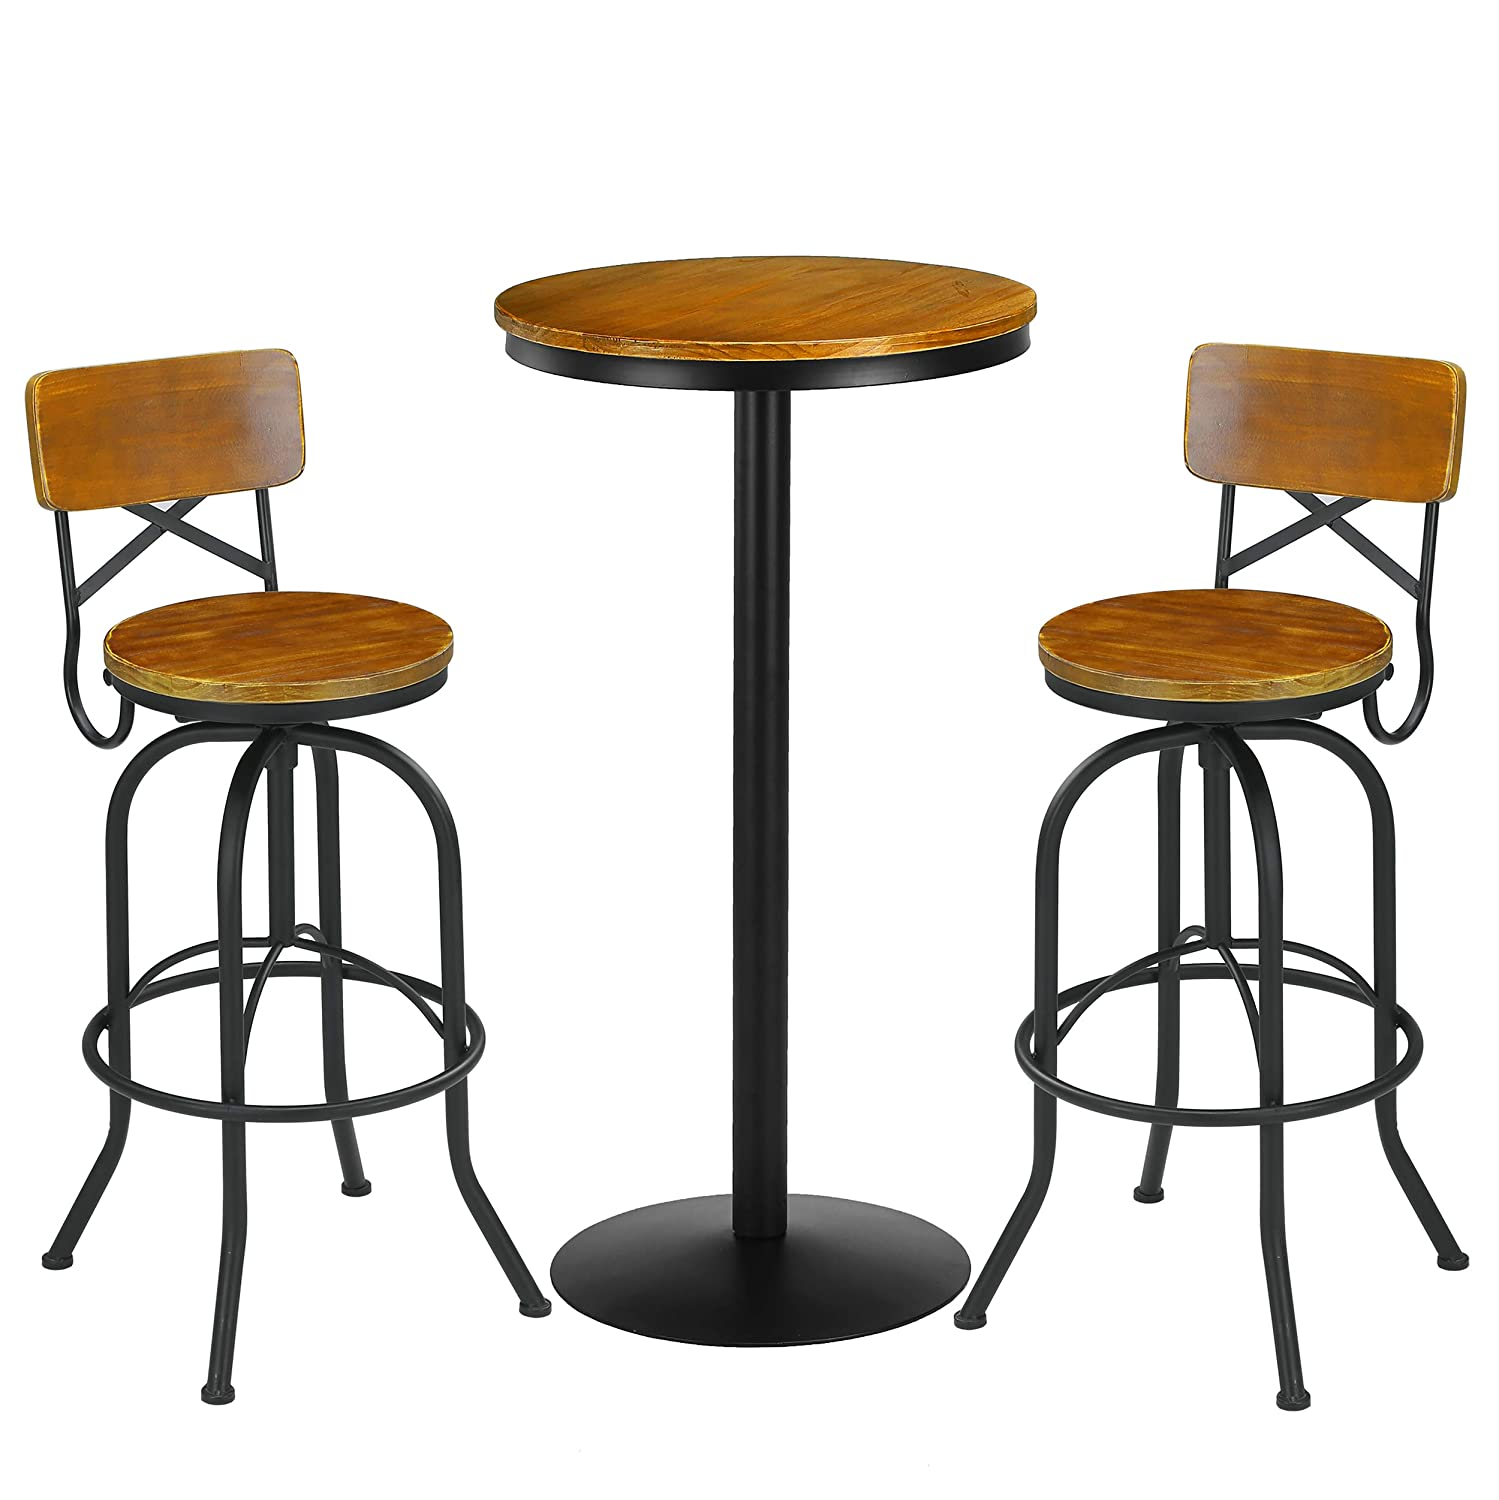 Amazon com vilavita 3 piece bar table set 41 5 pub table with 2 bar stools retro finish bistro pub kitchen dining furniture wooden top with metal frame